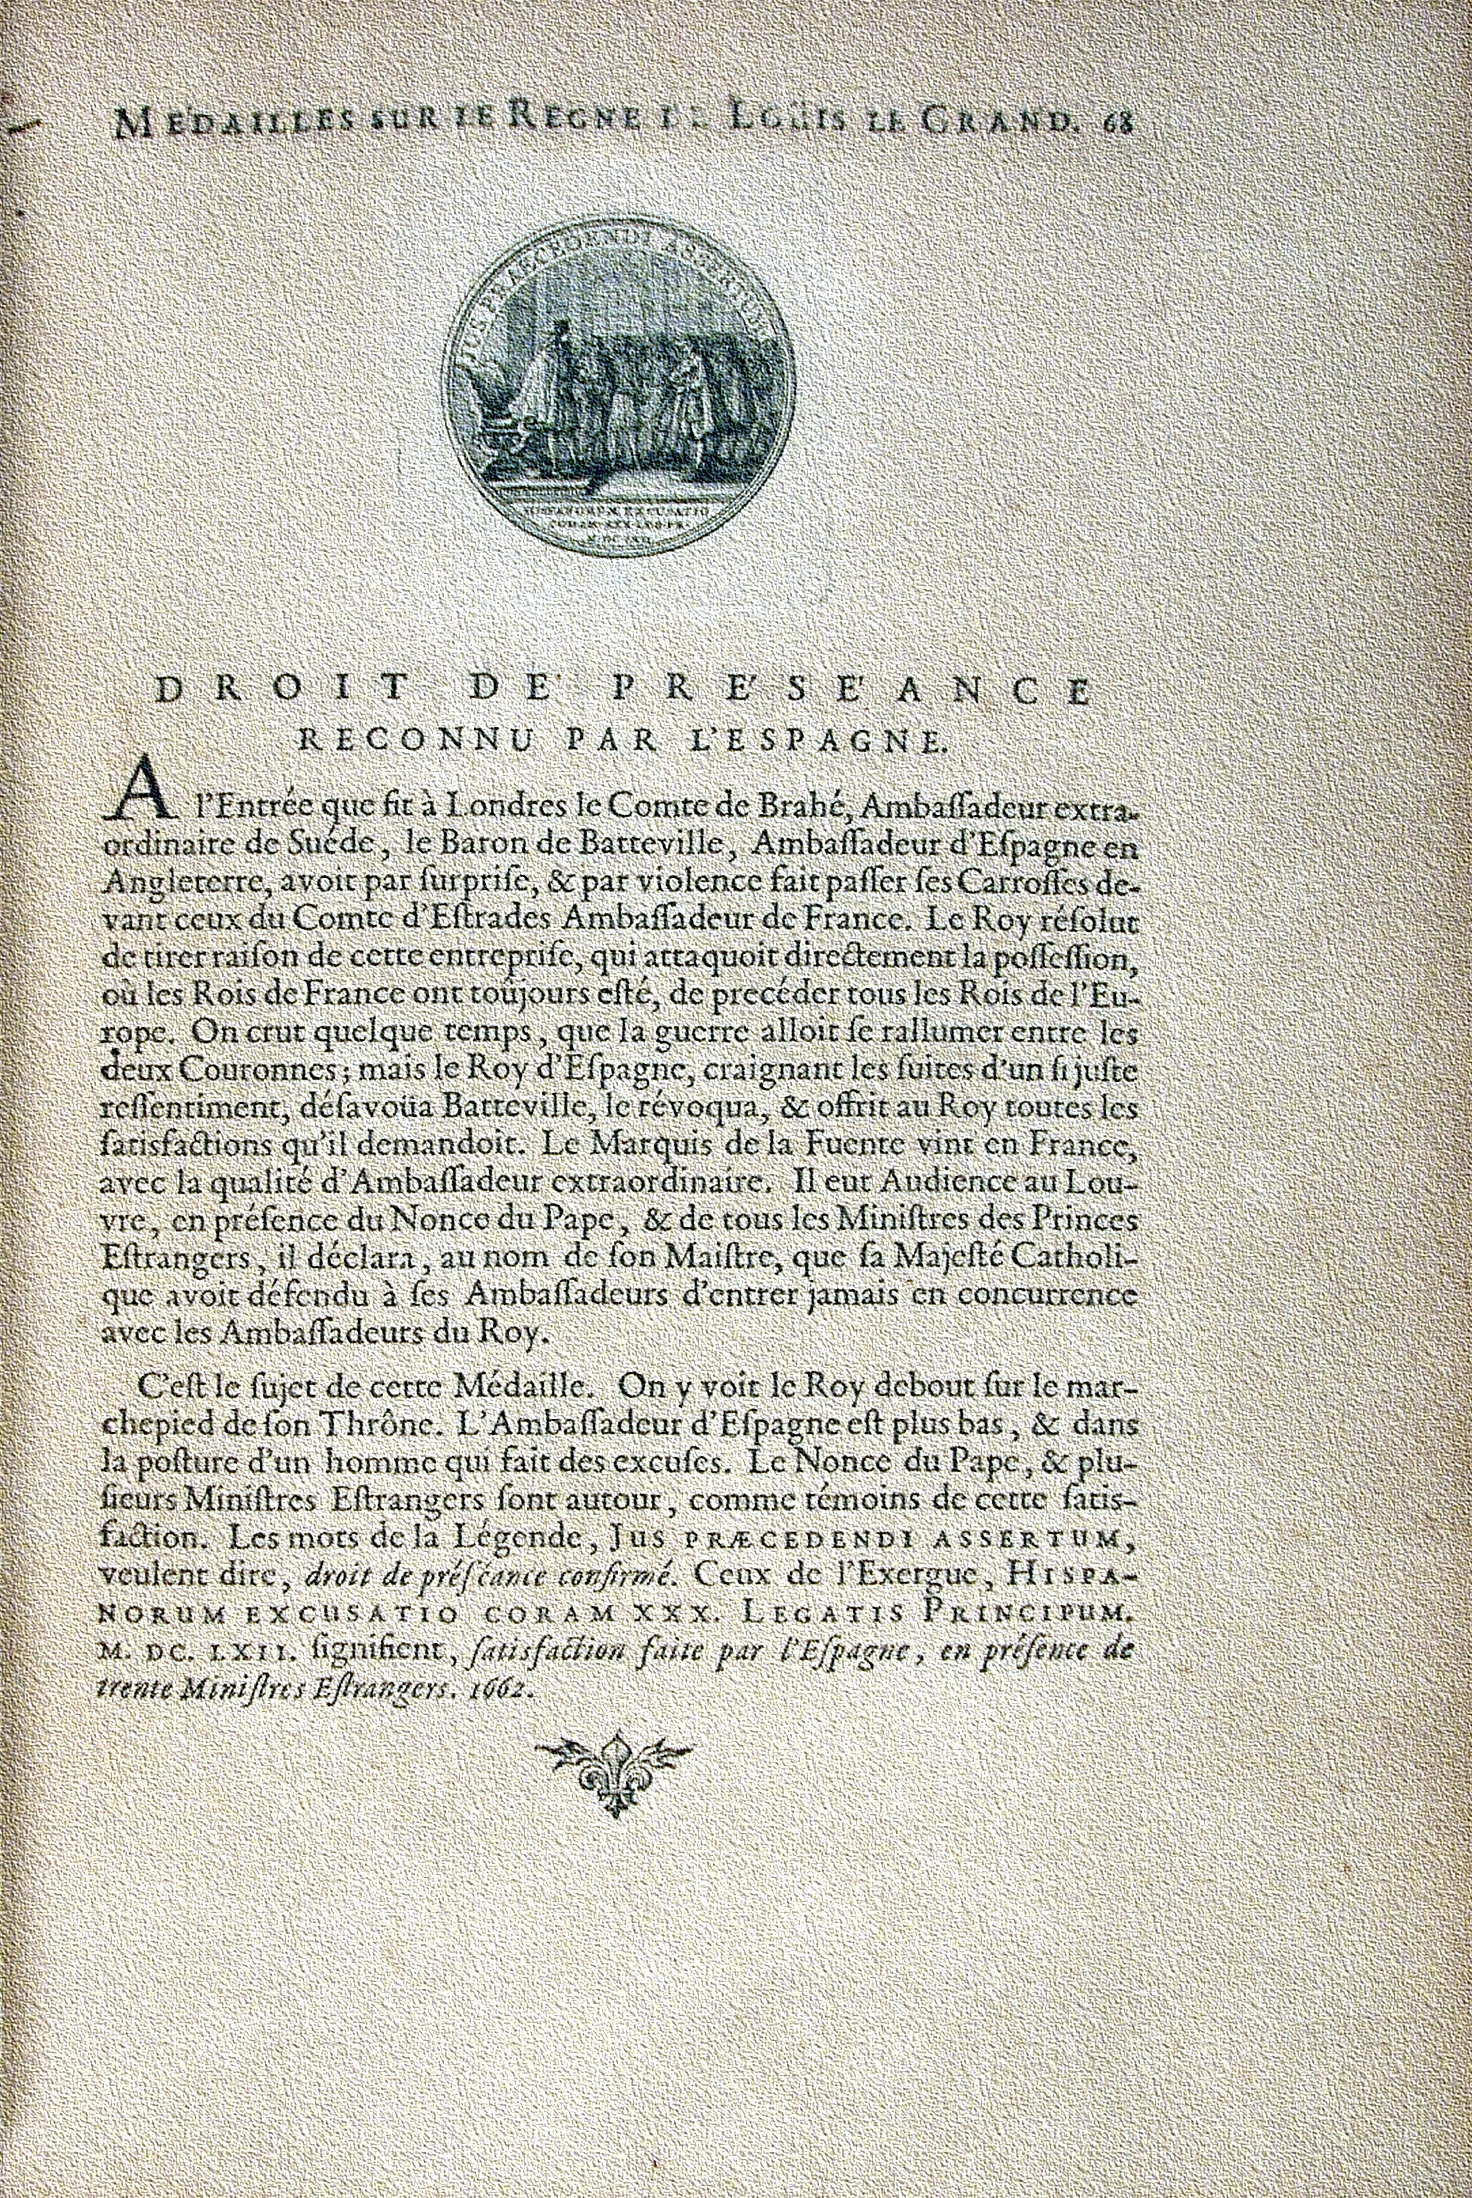 Medailles sur les principaux evenements du regne de Louis le Grand, Paris, 1702